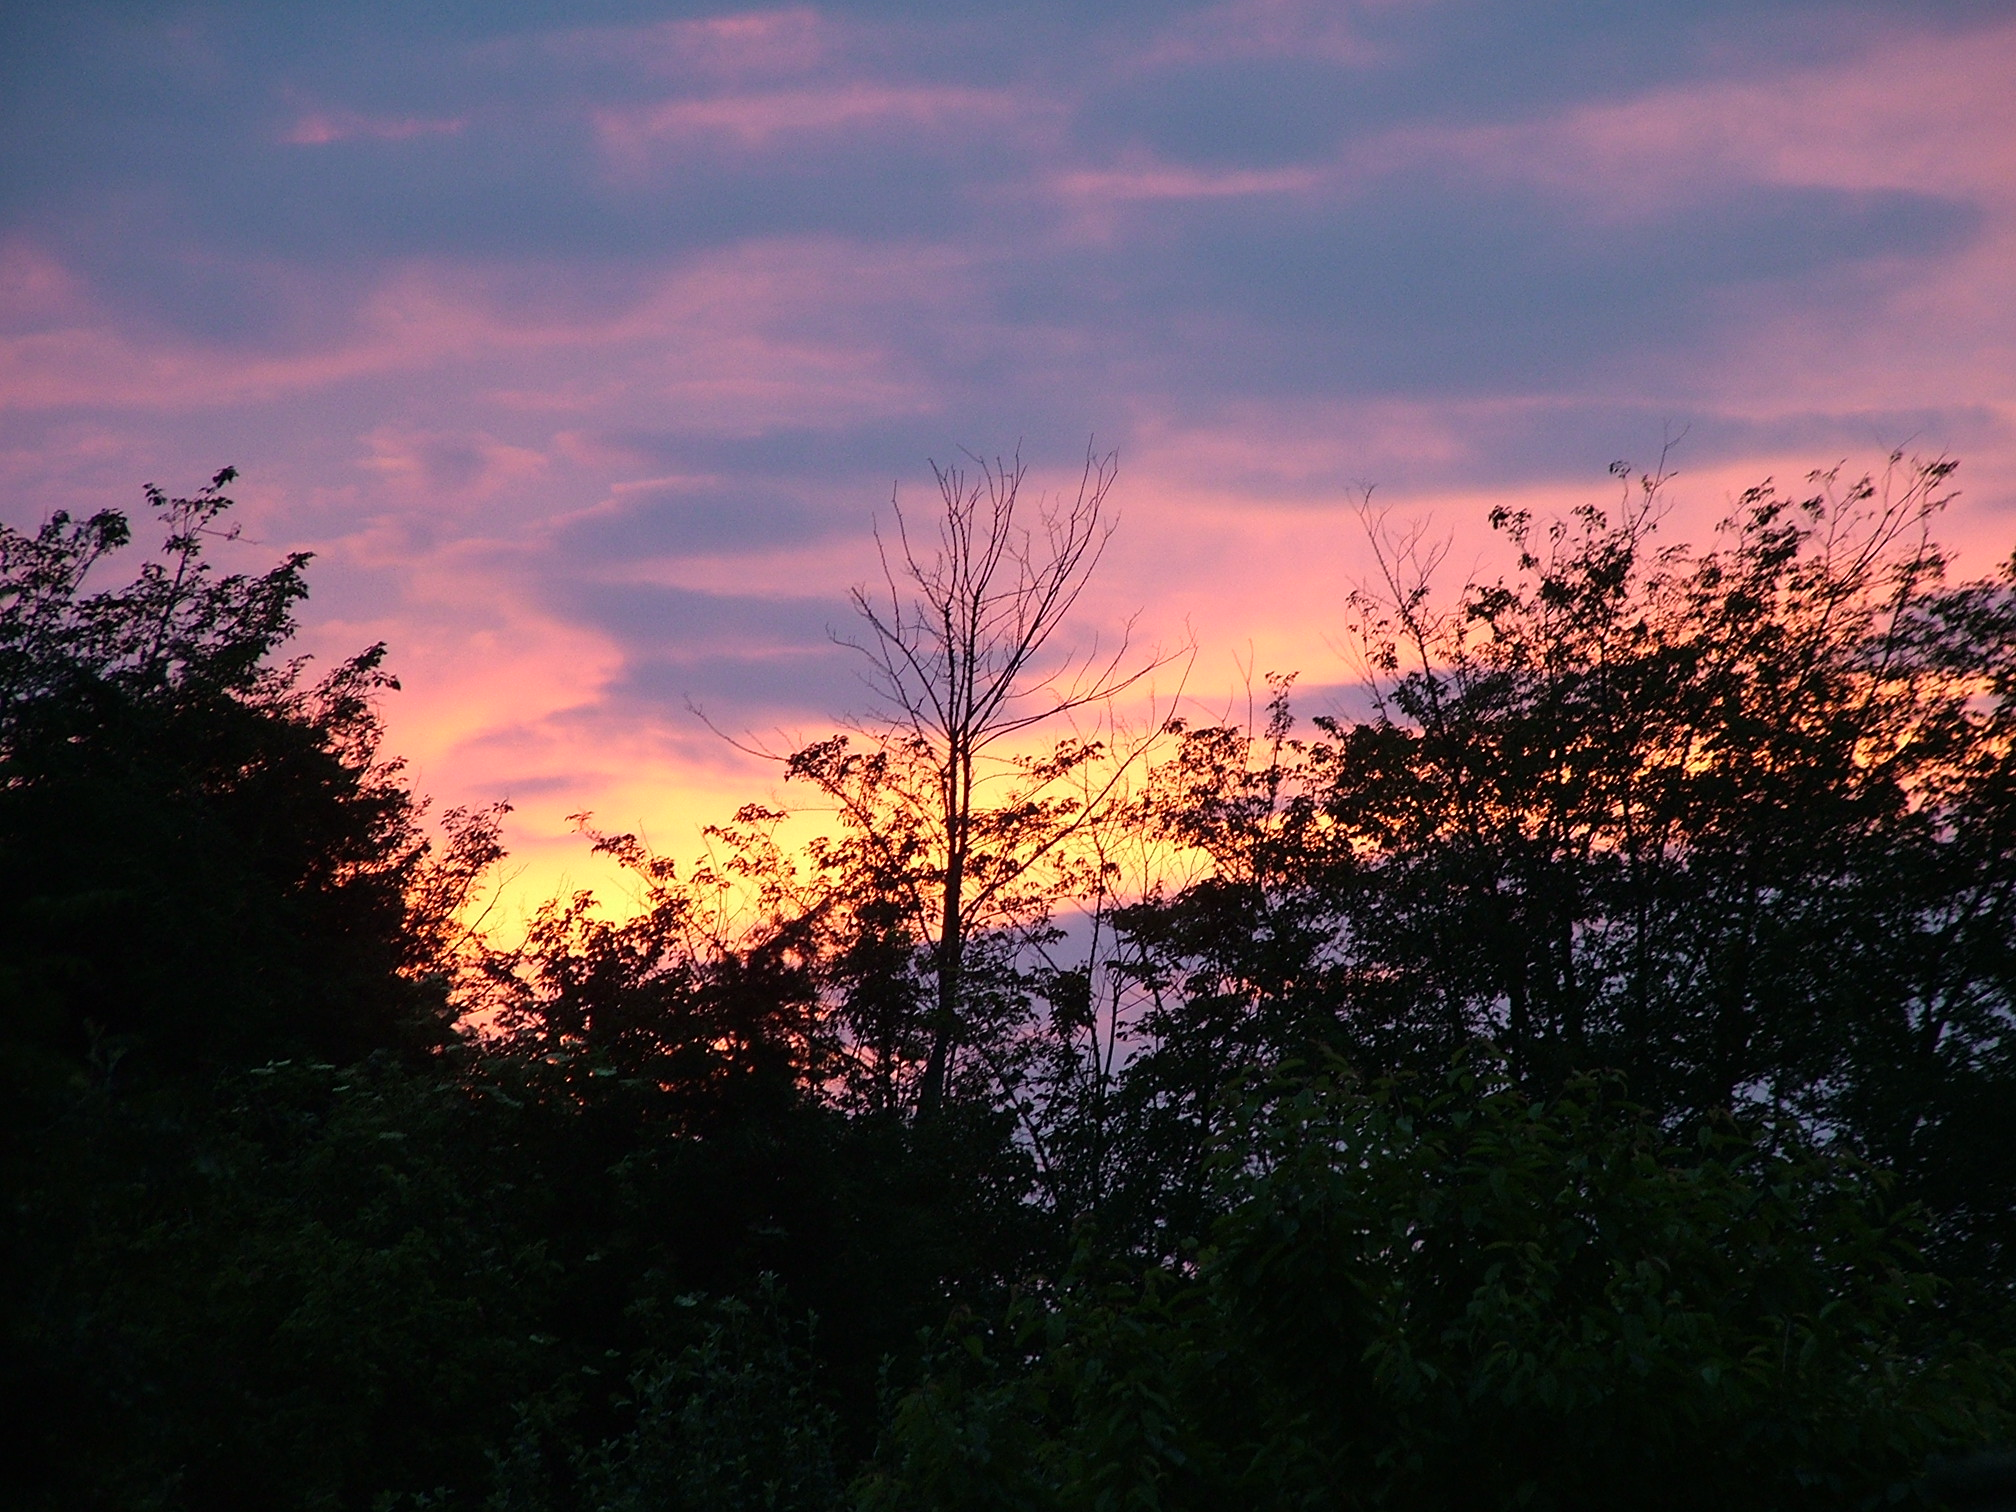 Sunset 17 June 2007 in Suffolk taken at approx 9.15pm